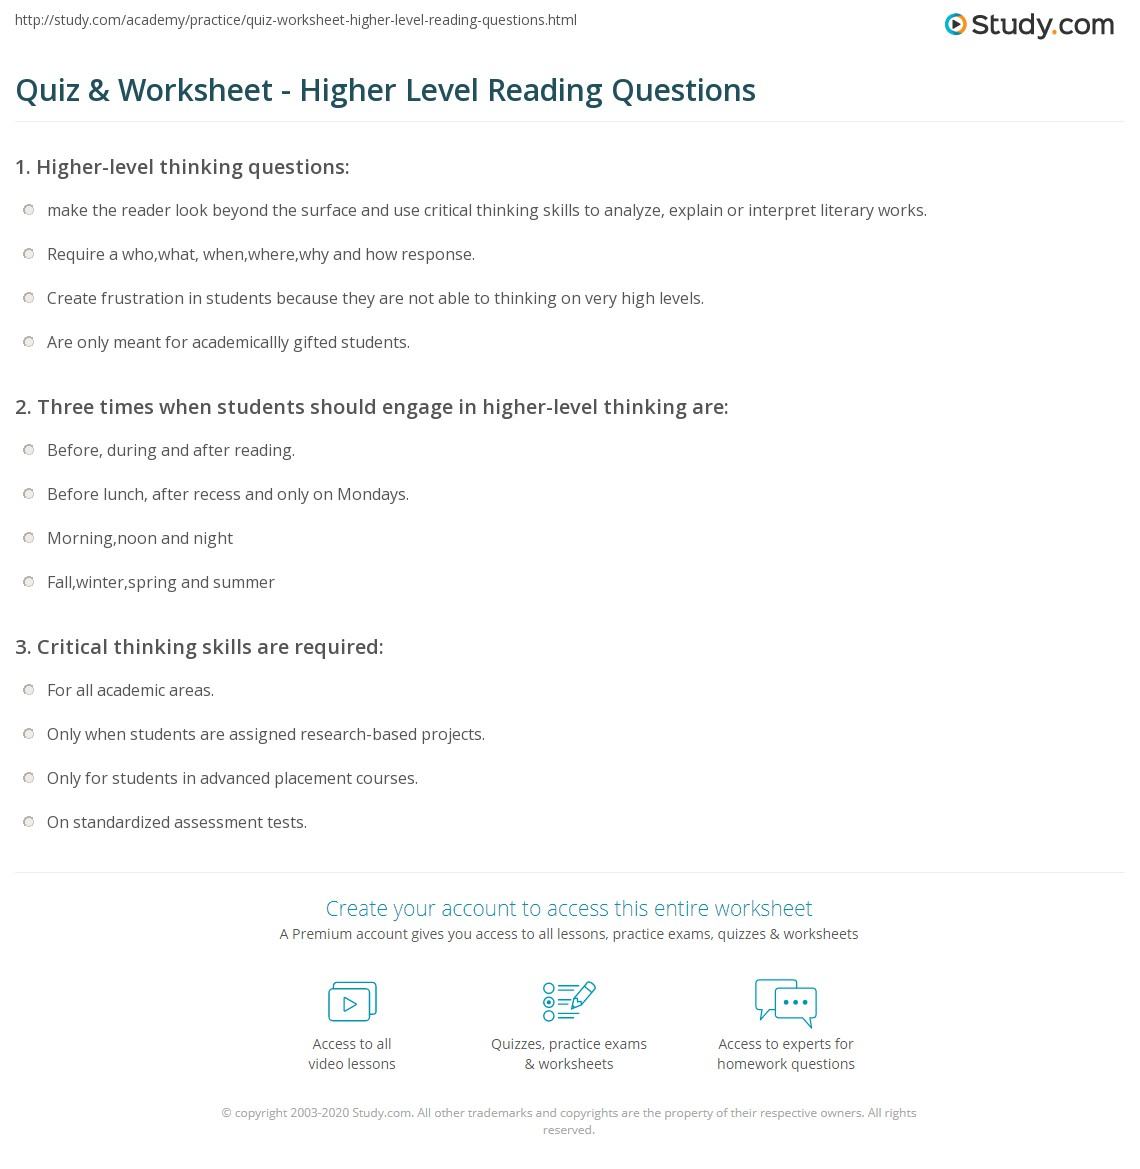 Worksheets Free Gifted And Talented Worksheets free gifted and talented worksheets vintagegrn quiz worksheet higher level reading questions study com